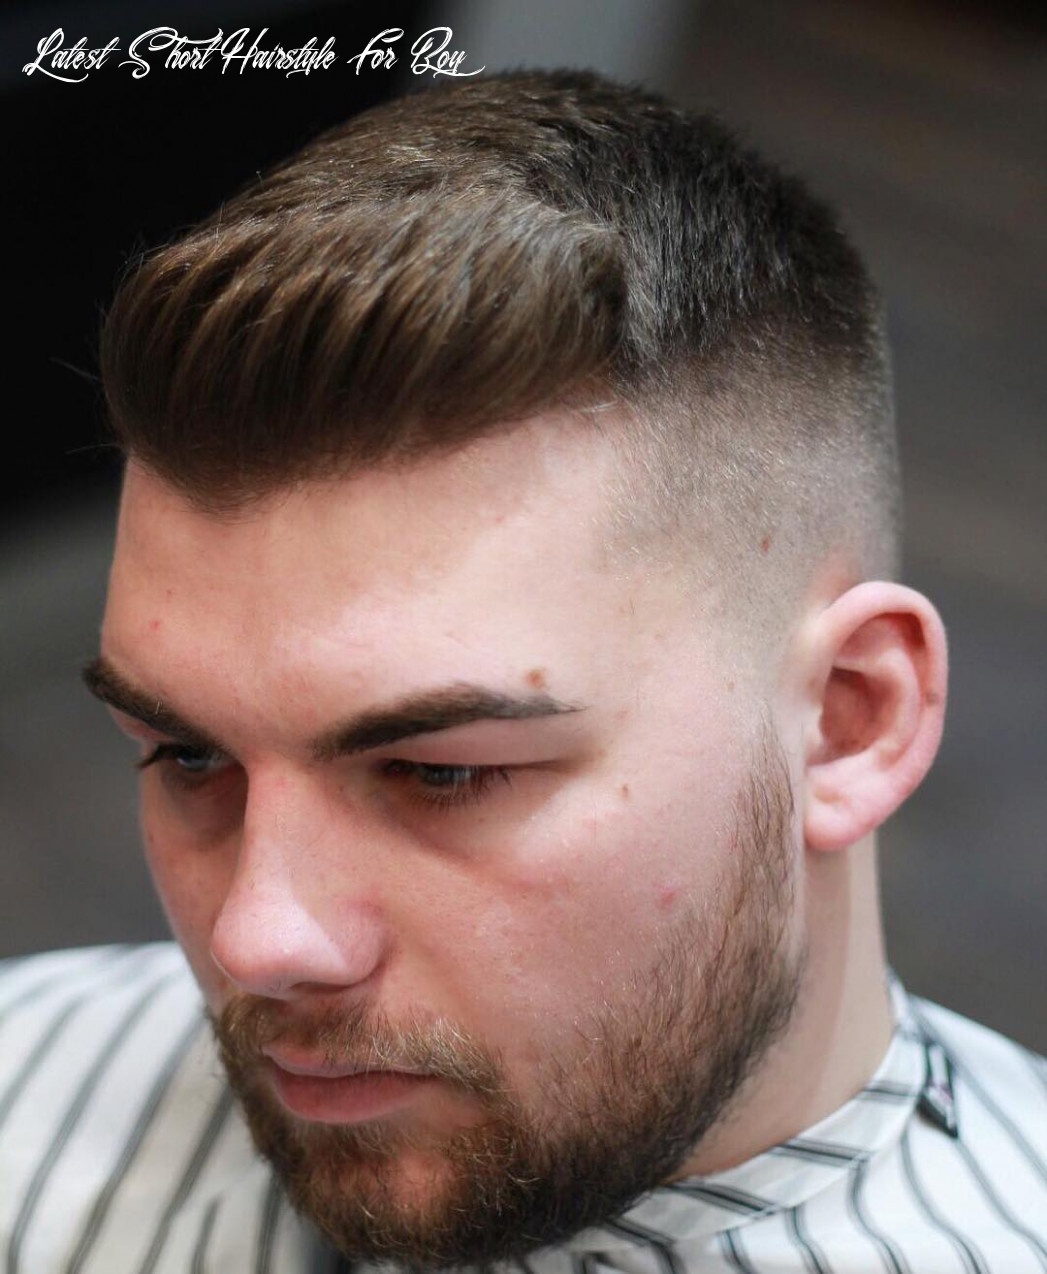 The 12 best short hairstyles for men | improb latest short hairstyle for boy